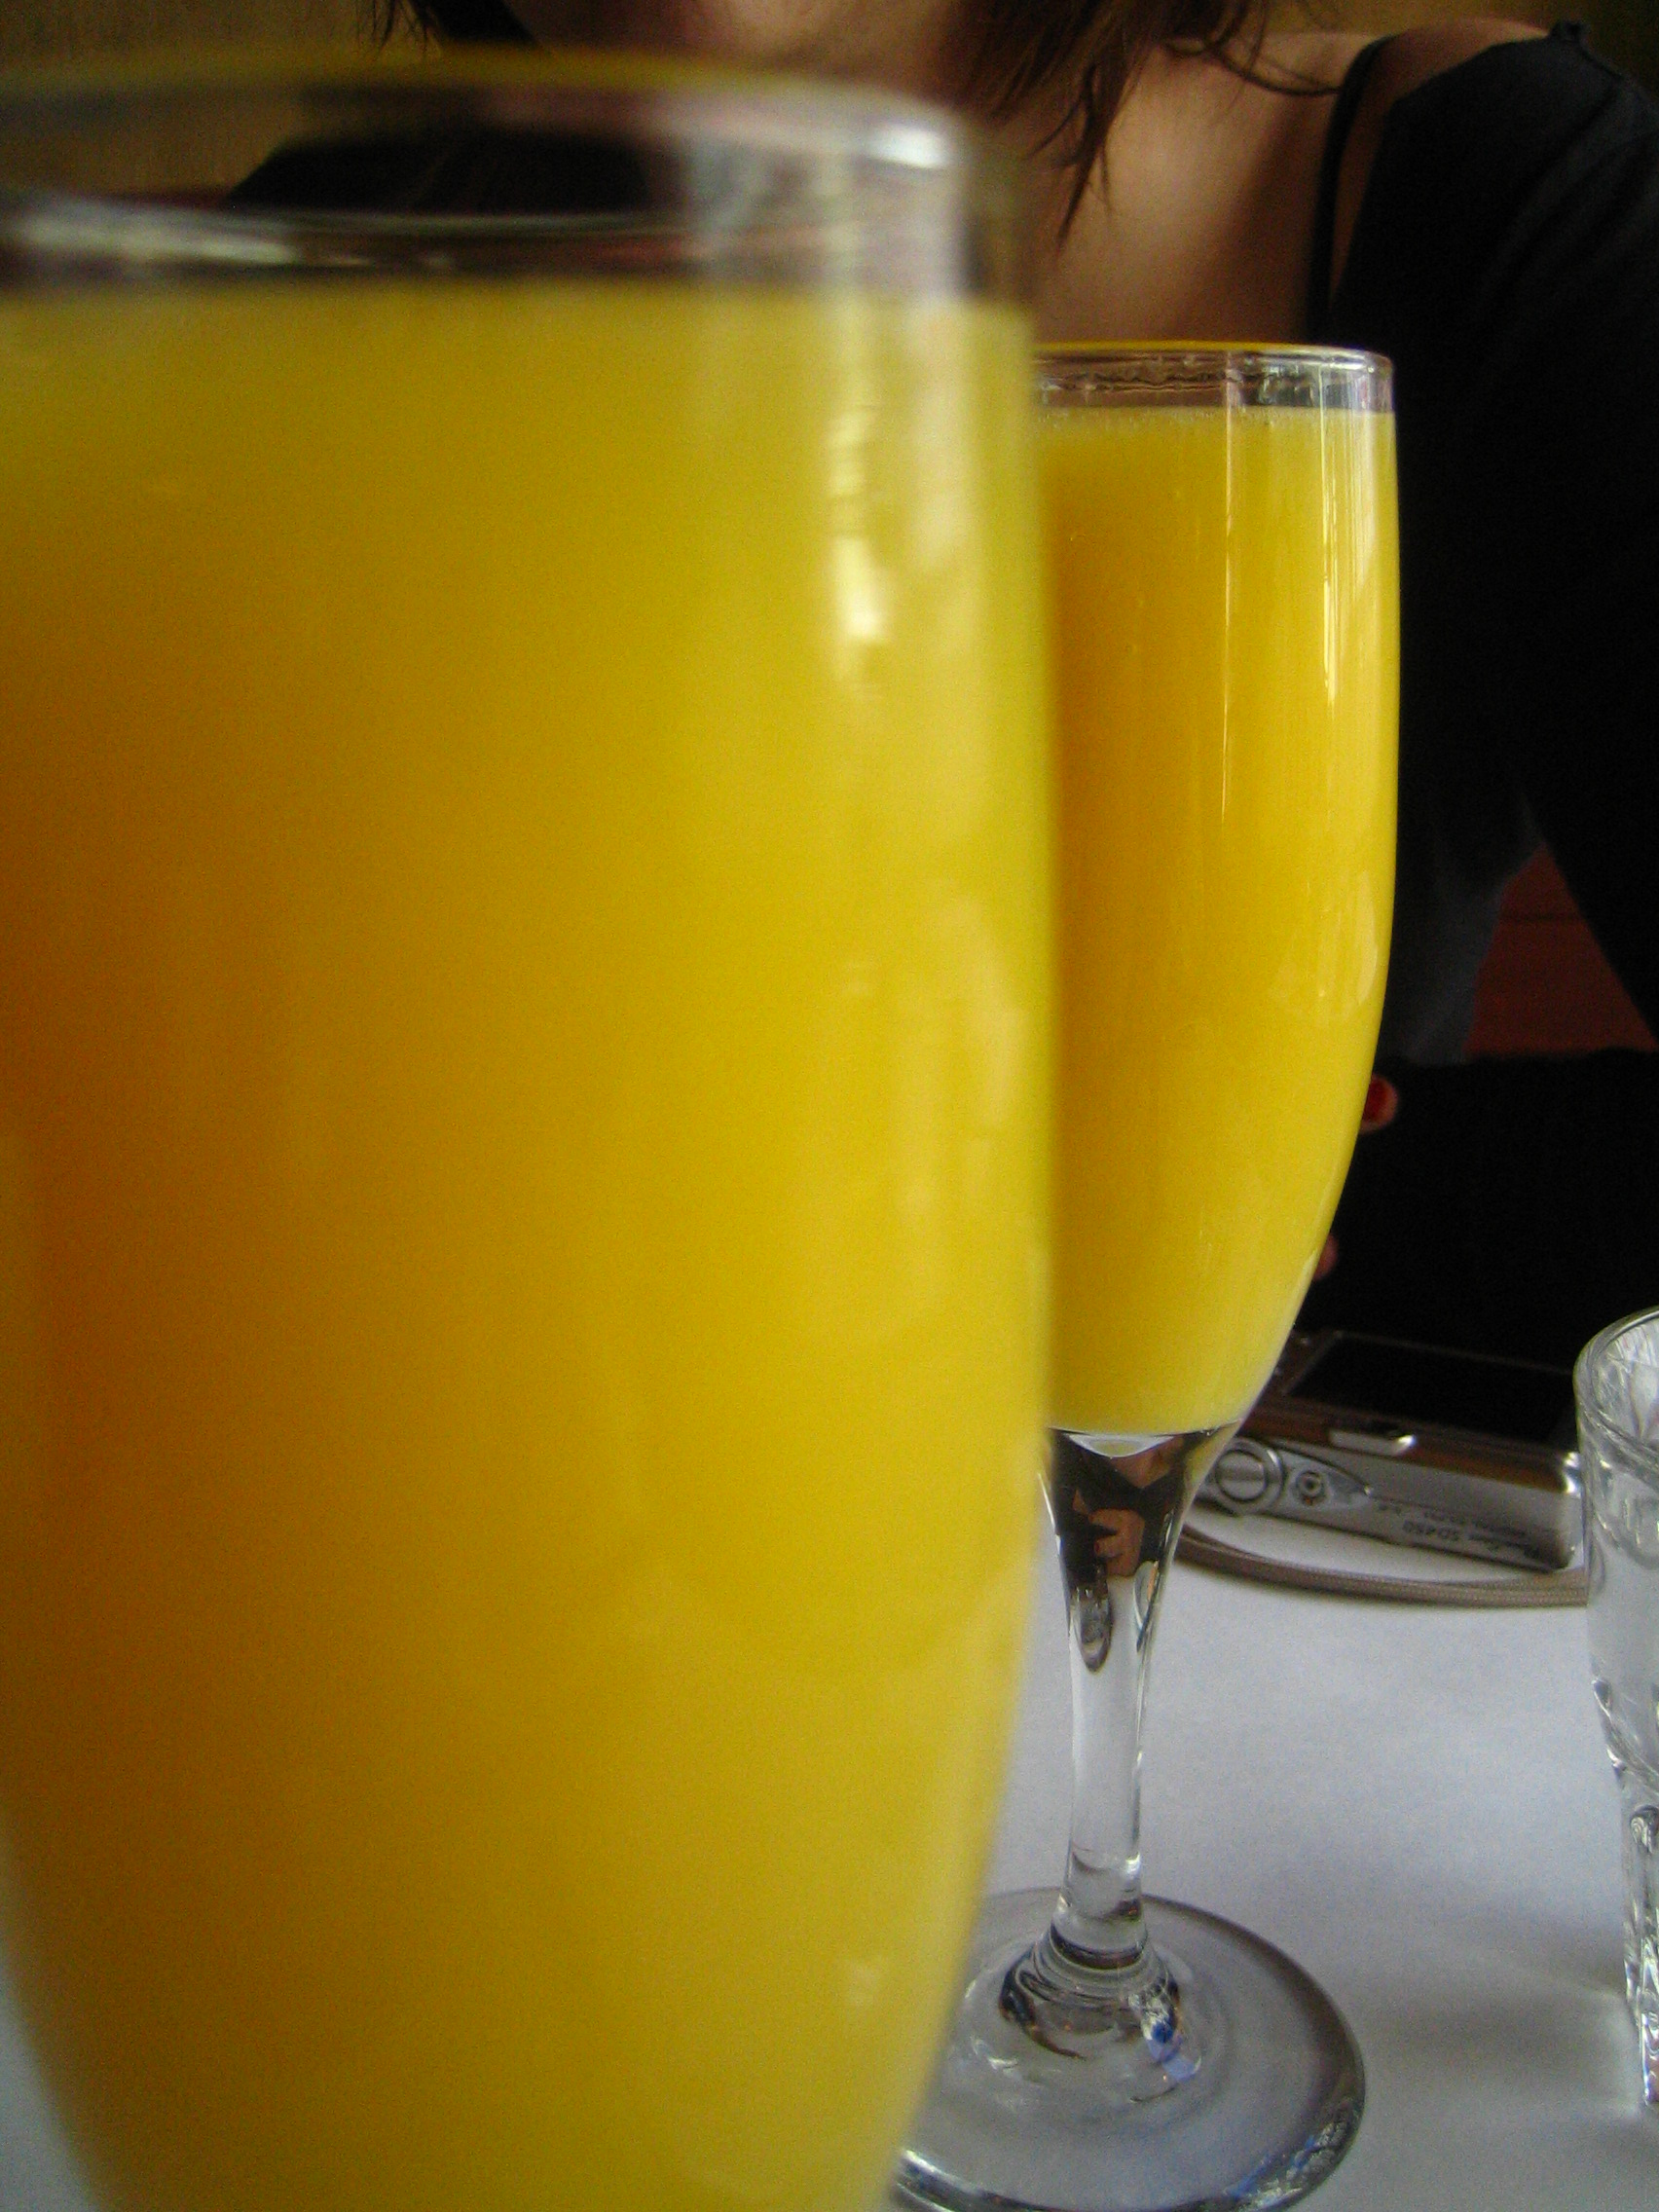 File:Mimosa cocktail.jpg - Wikimedia Commons